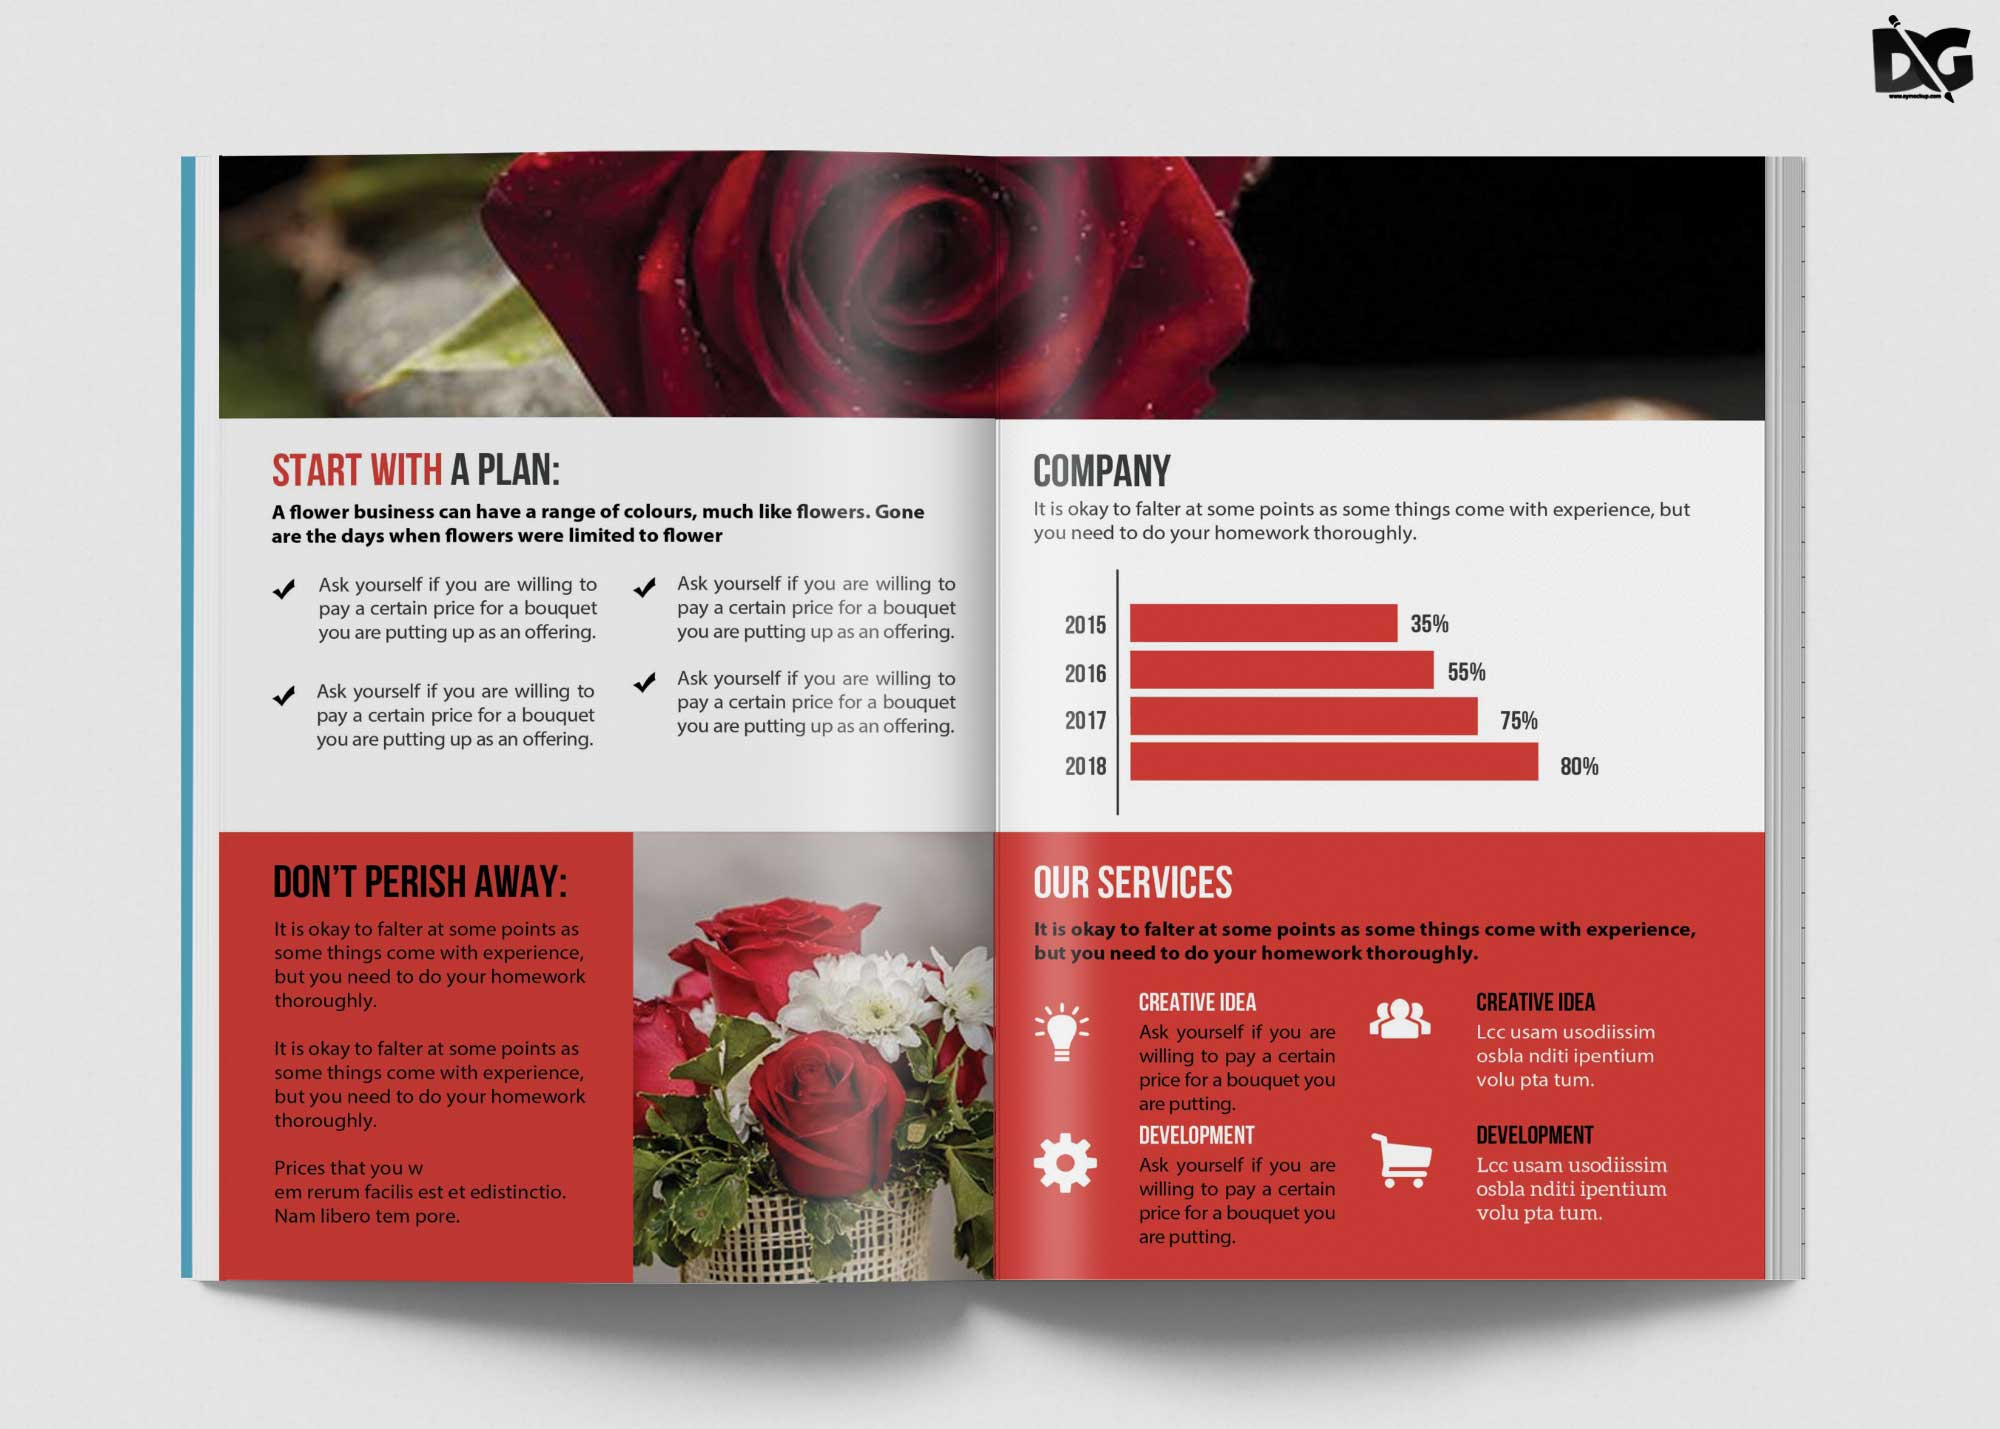 Free Download Flower Product Brochure Template | Free PSD ...